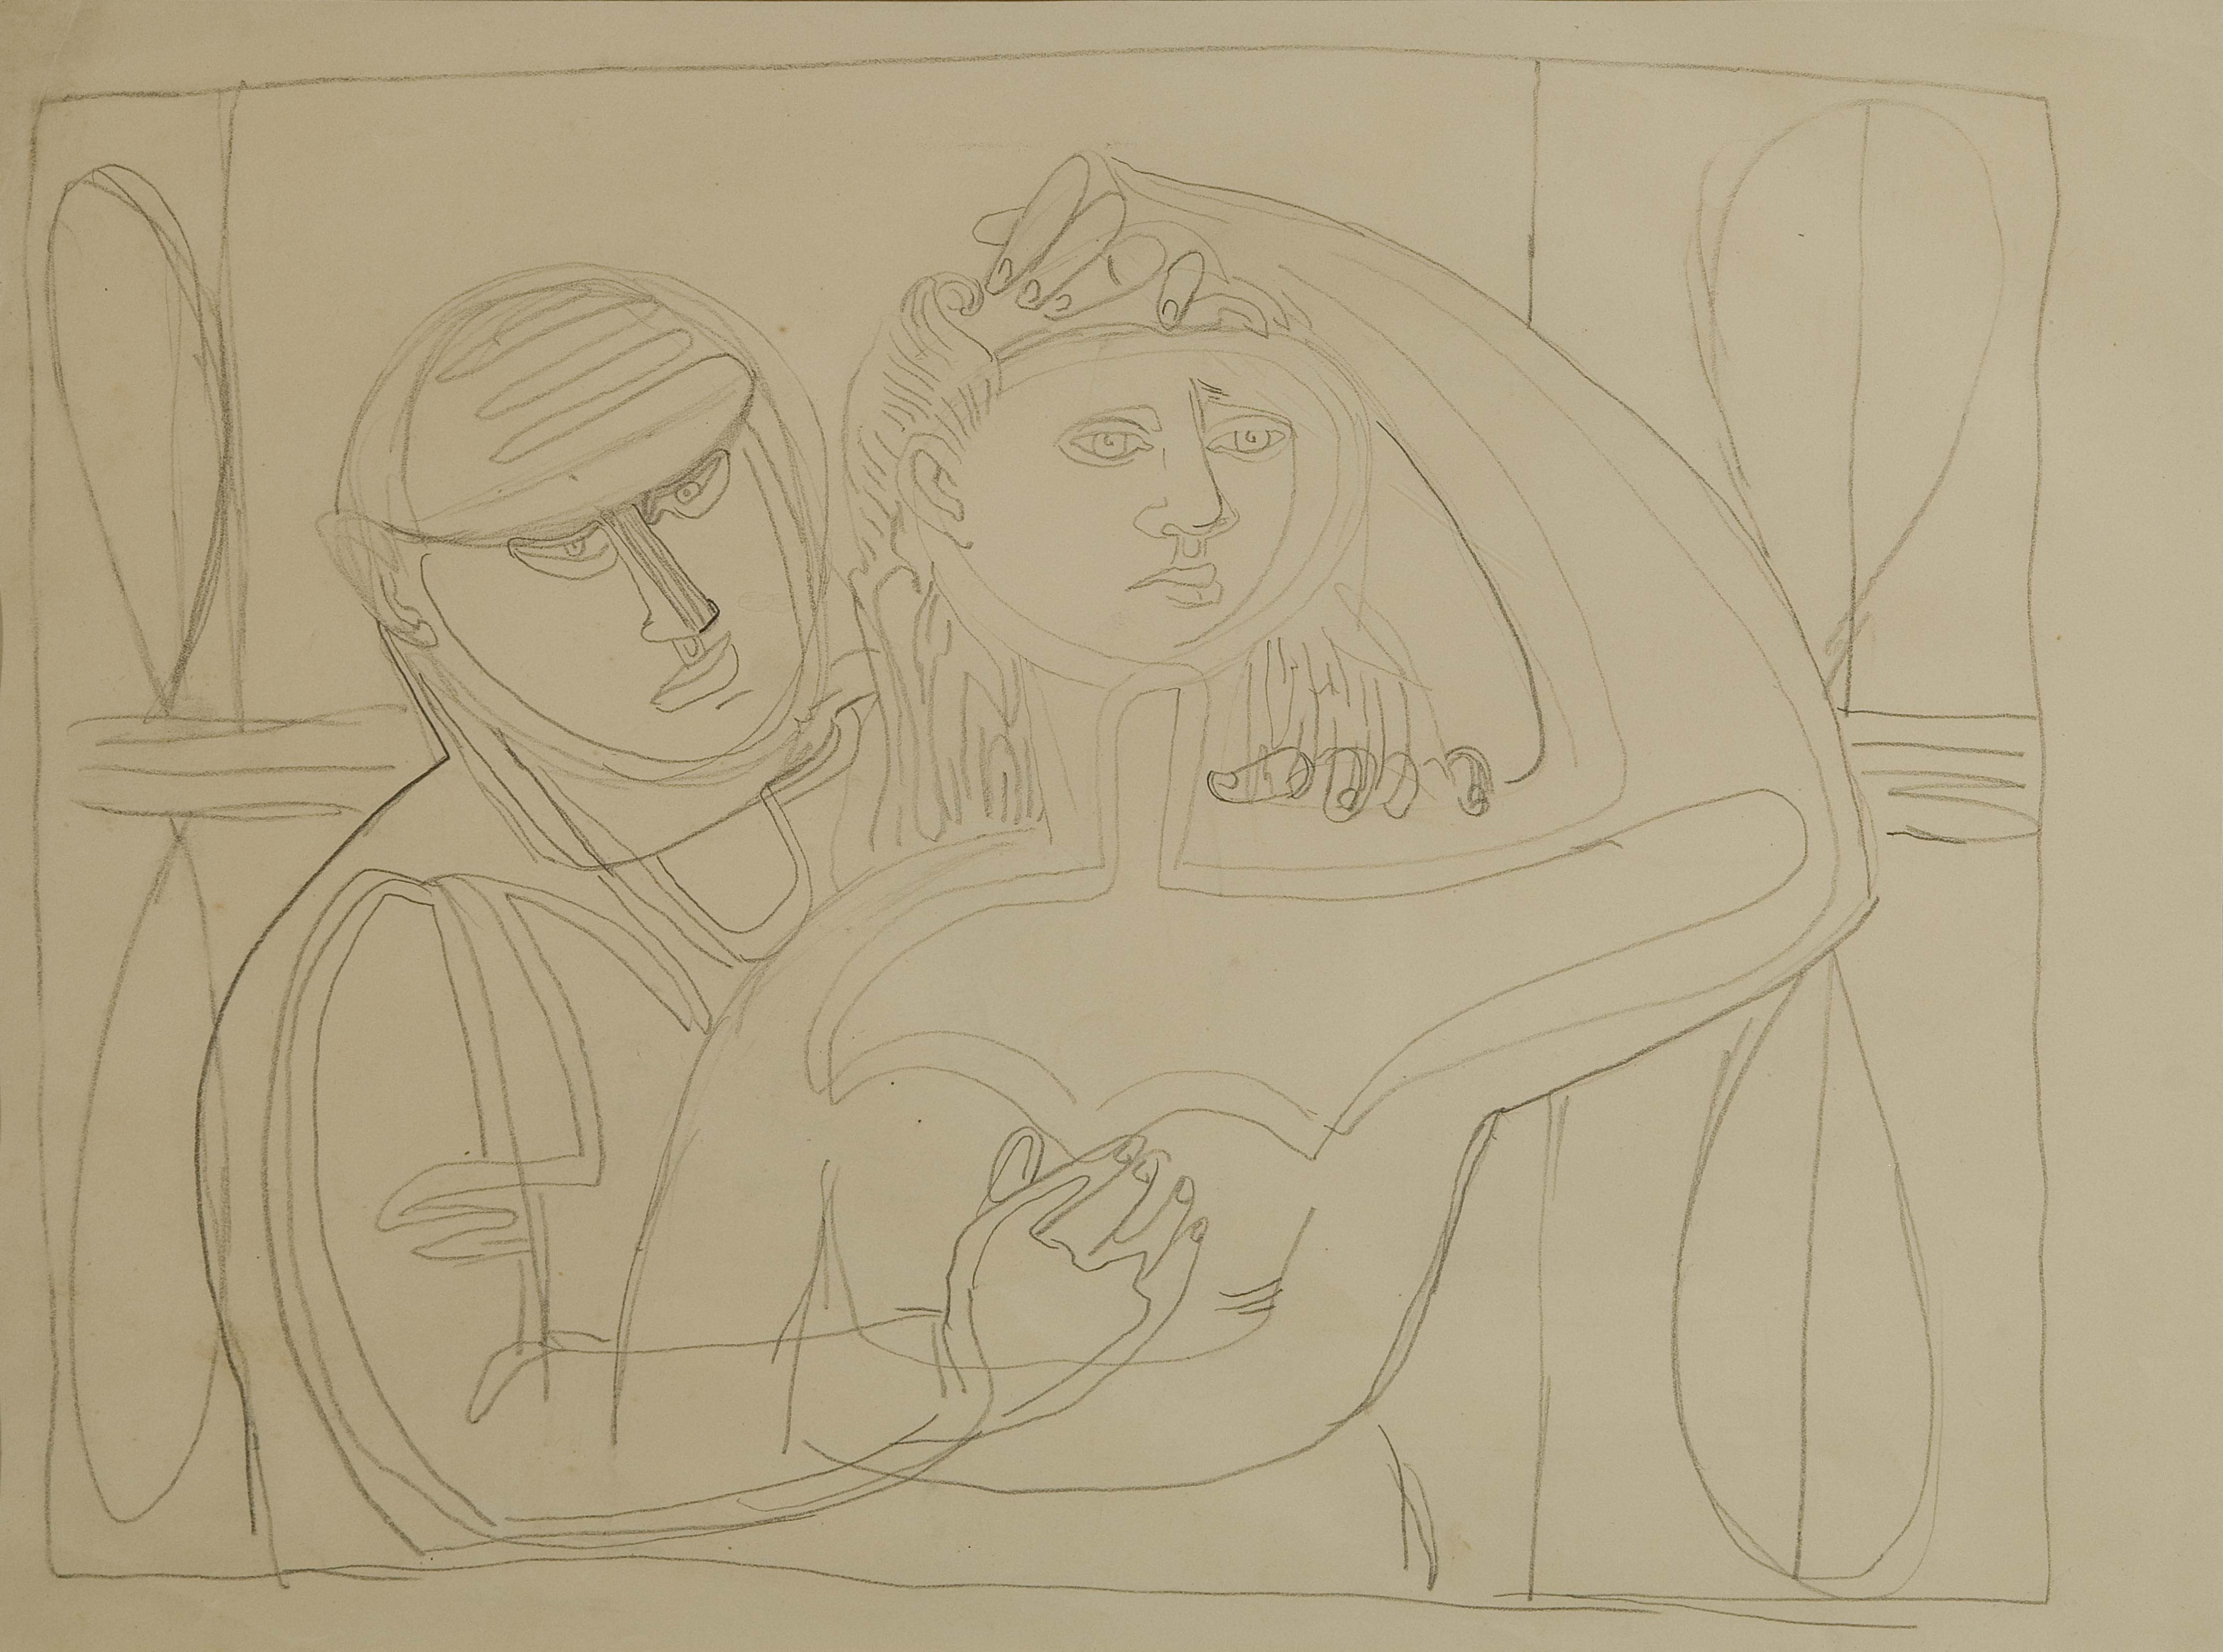 Jankel Adler (1895-1949)